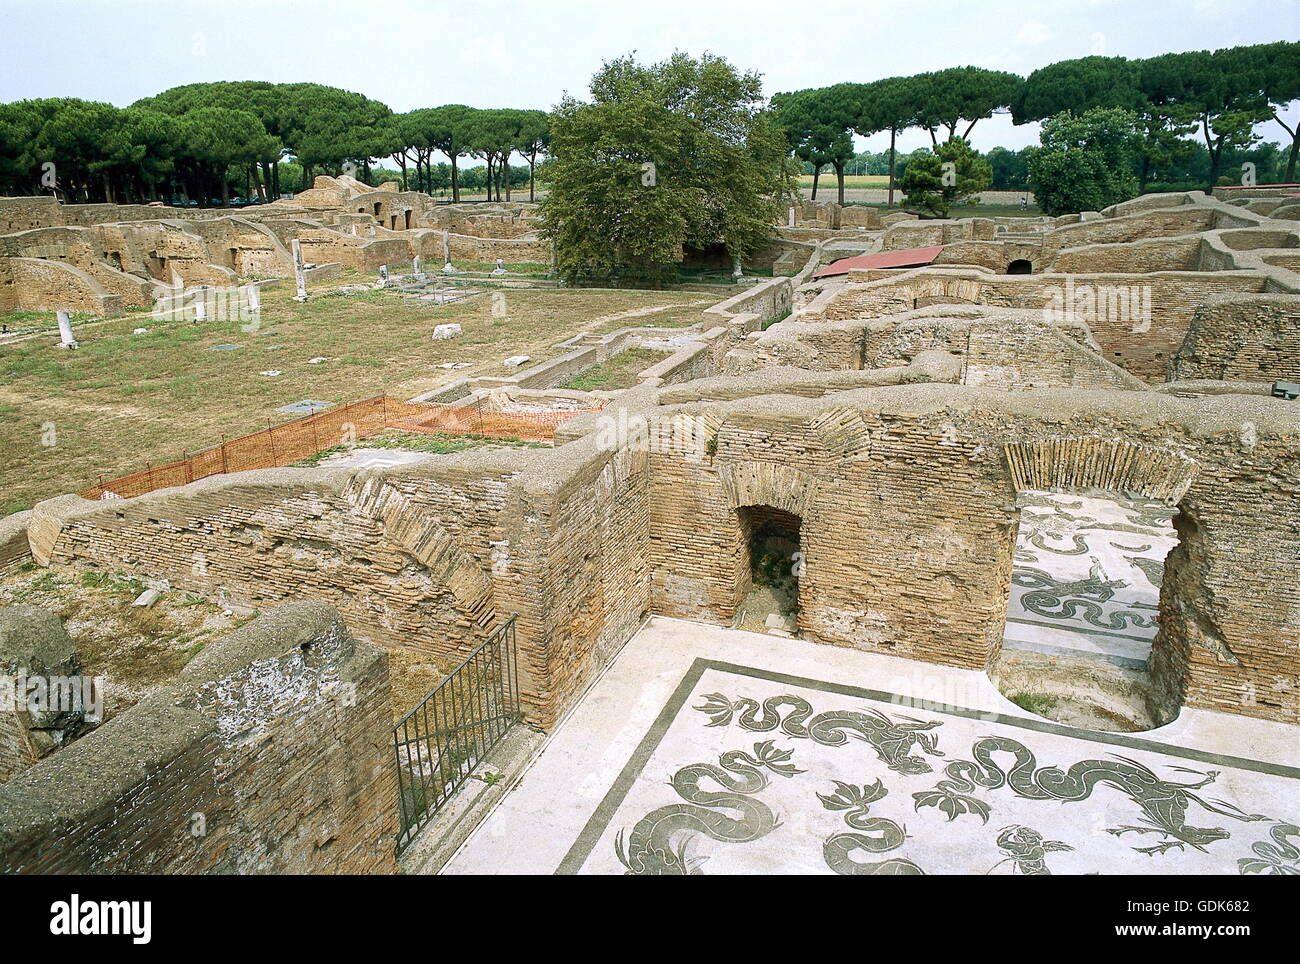 geography / travel, Italy, Rome, Ostia Antica, excavation site, harbour, founded in 7th century BC by king Ancus - Stock Image